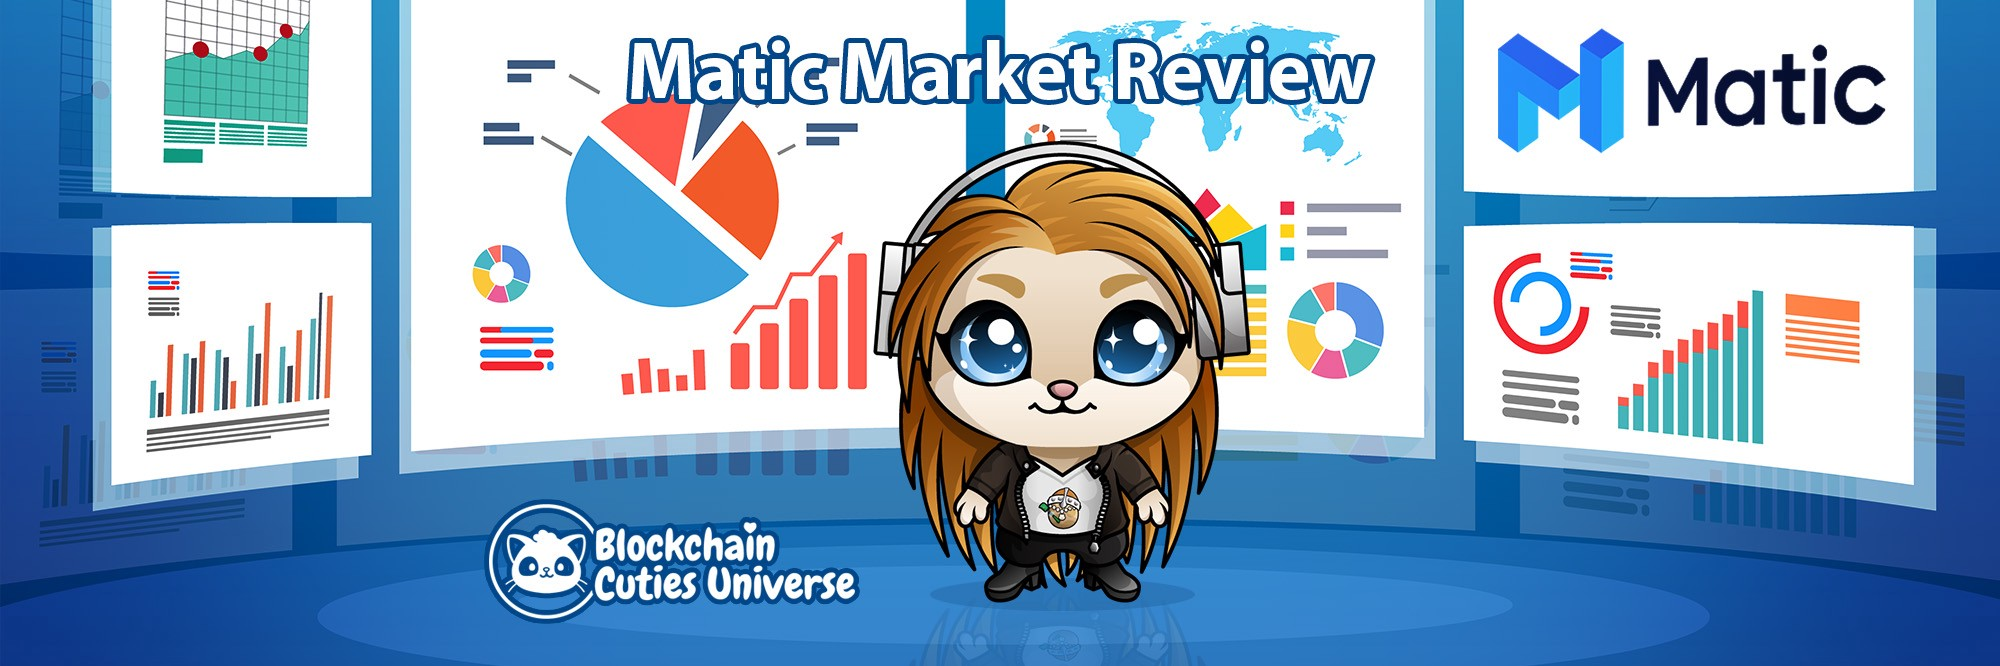 What's Happening on the Matic Market